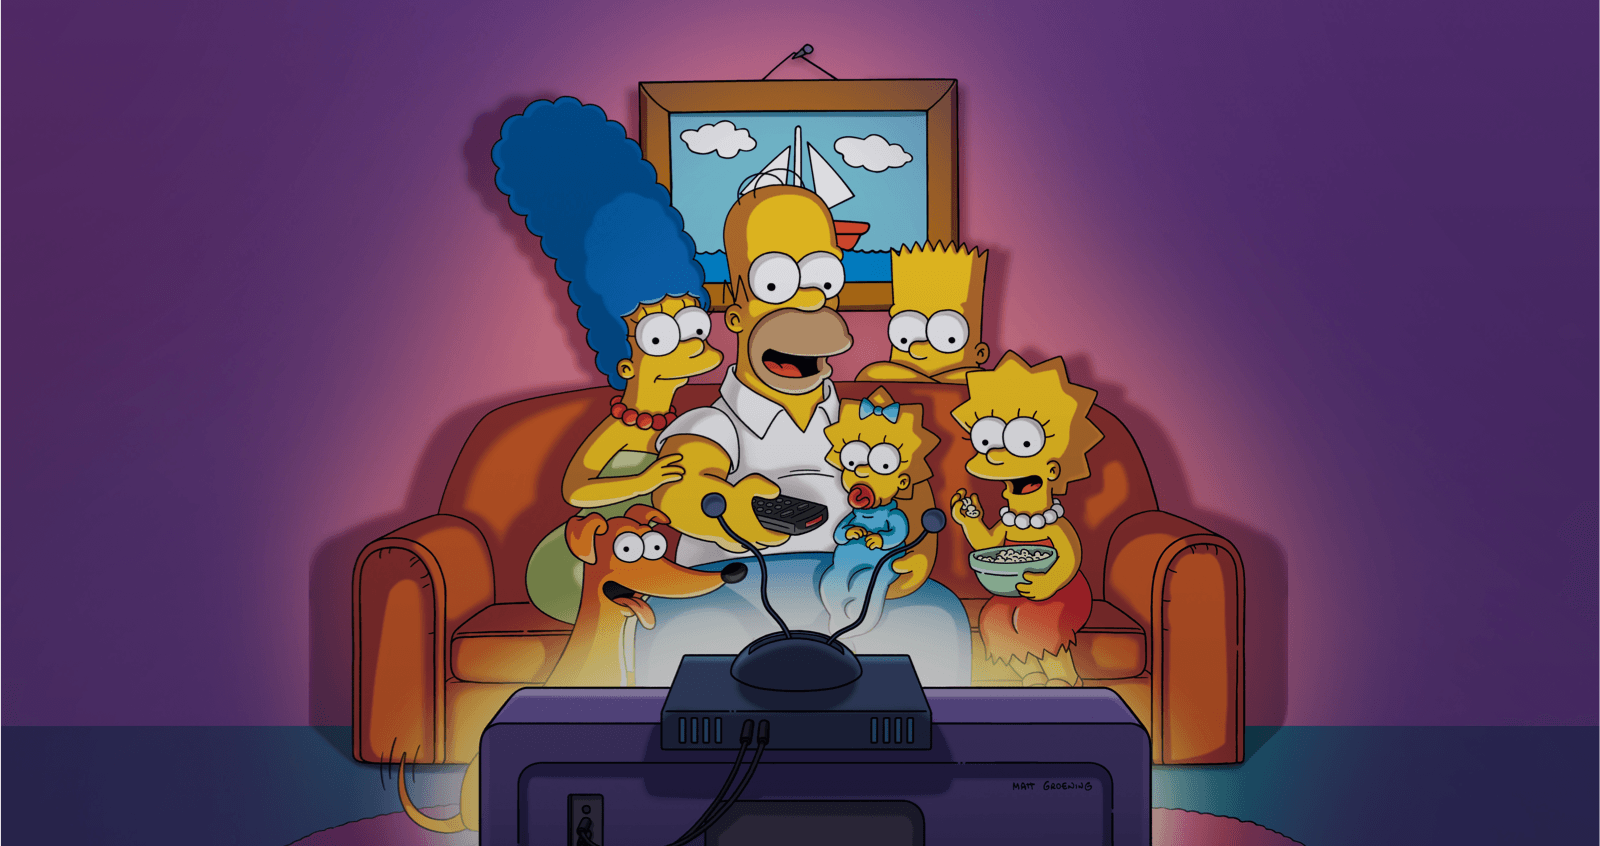 Danny Elfman: 'The Simpsons' is coming to an end